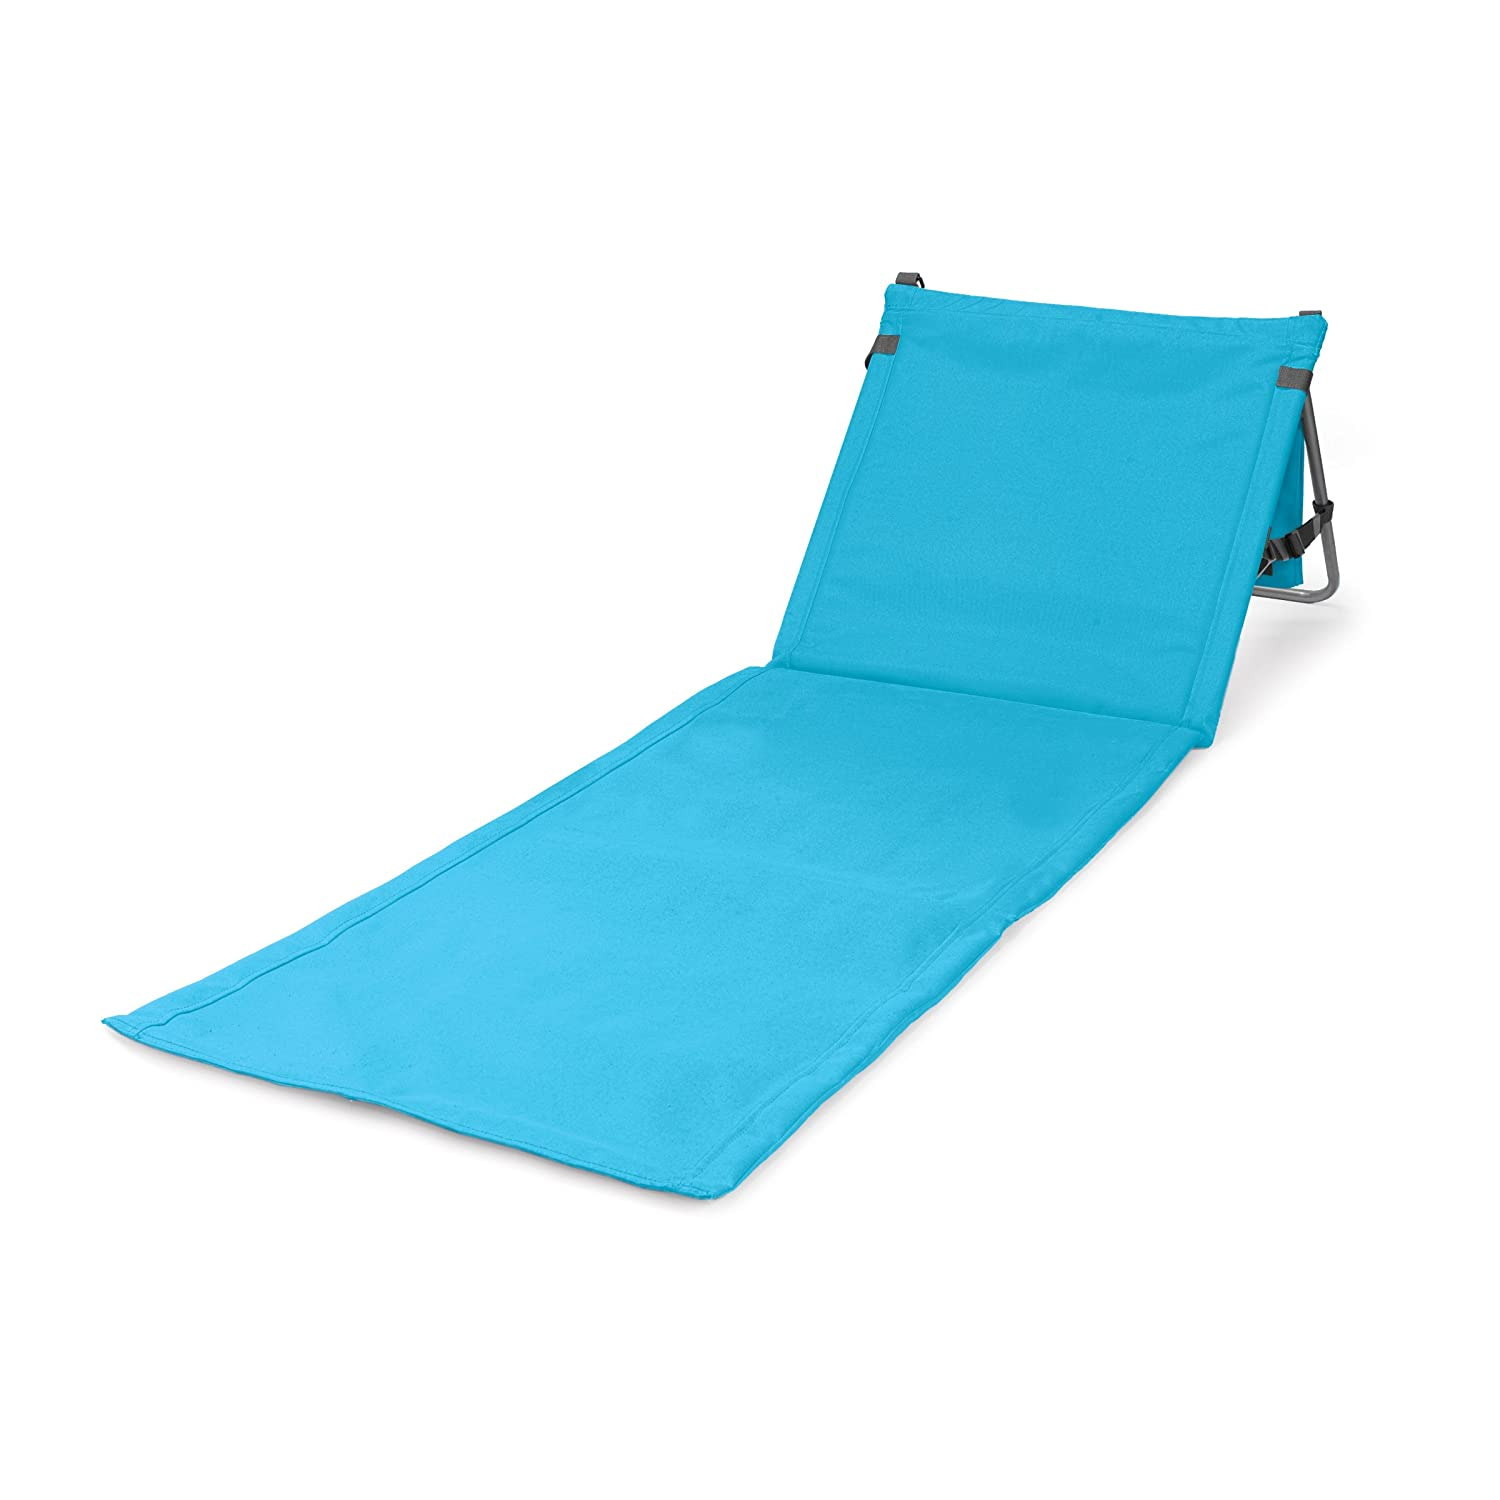 amazoncom picnic time portable beach mat blue folding chairs patio lawn u0026 garden - Beach Lounge Chairs